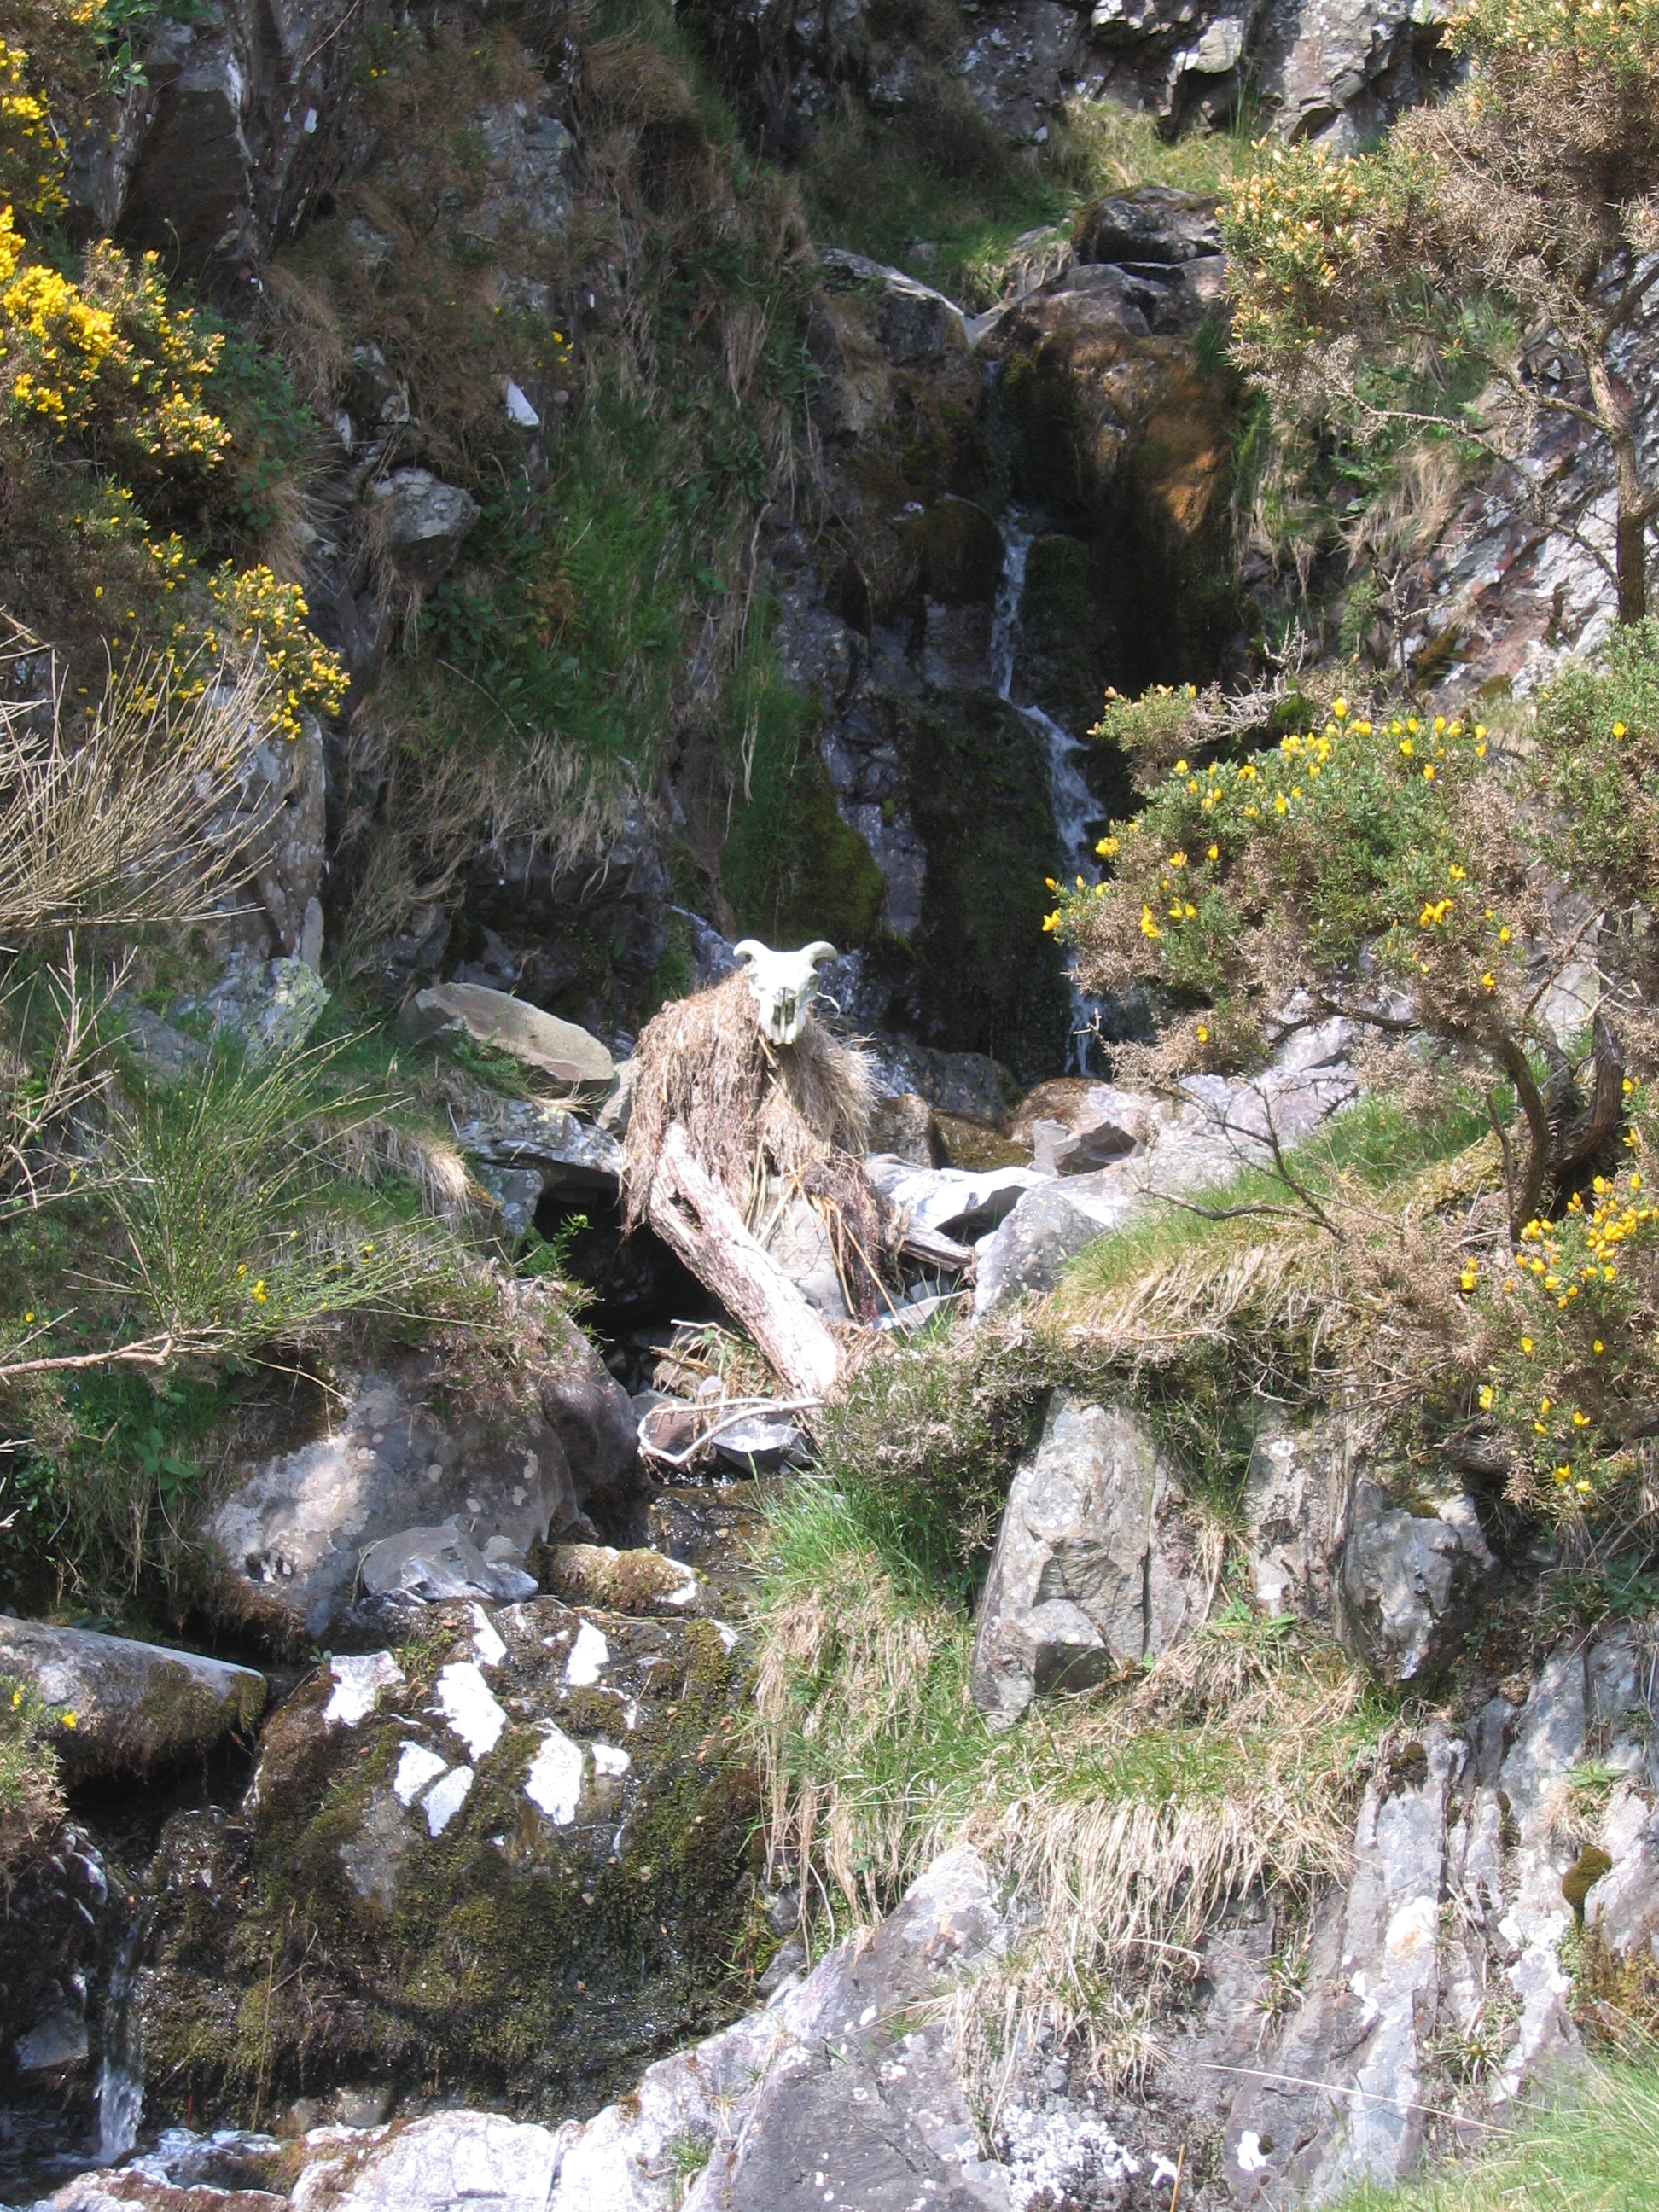 river god sculpture with sheep skull